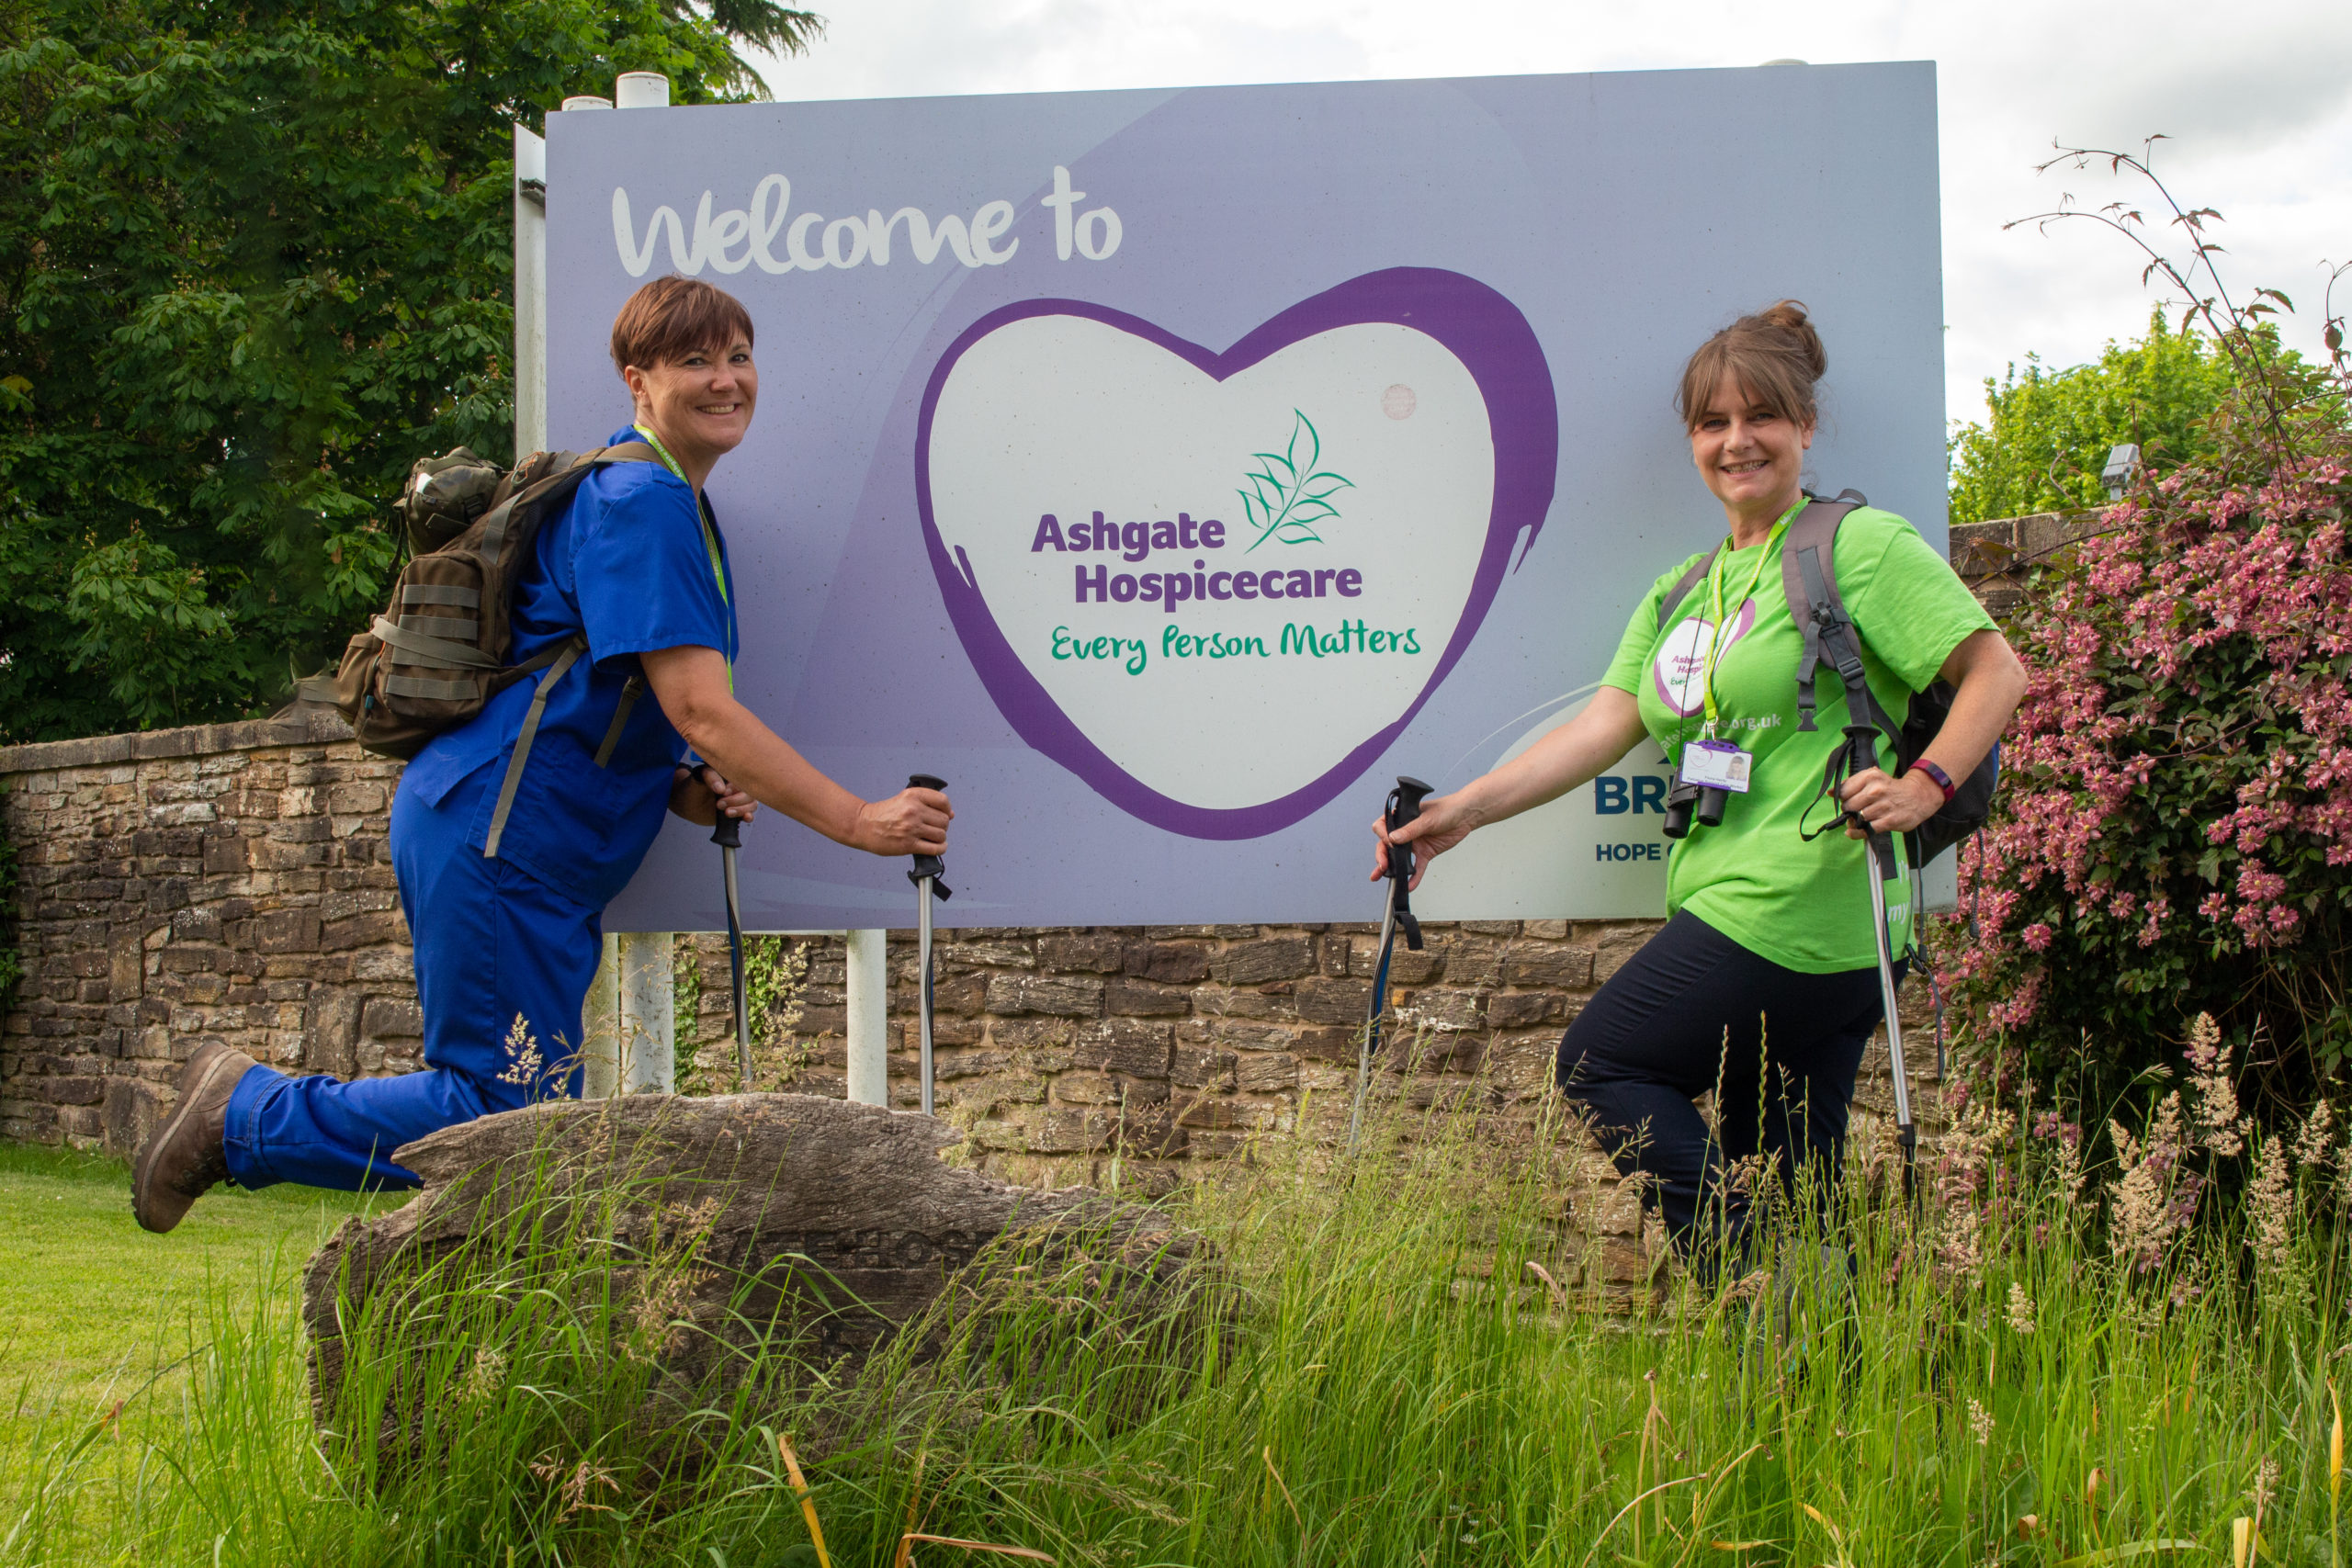 Fundraising Roundup II: Ashgate Hospicecare colleagues swap scrubs for hiking boots